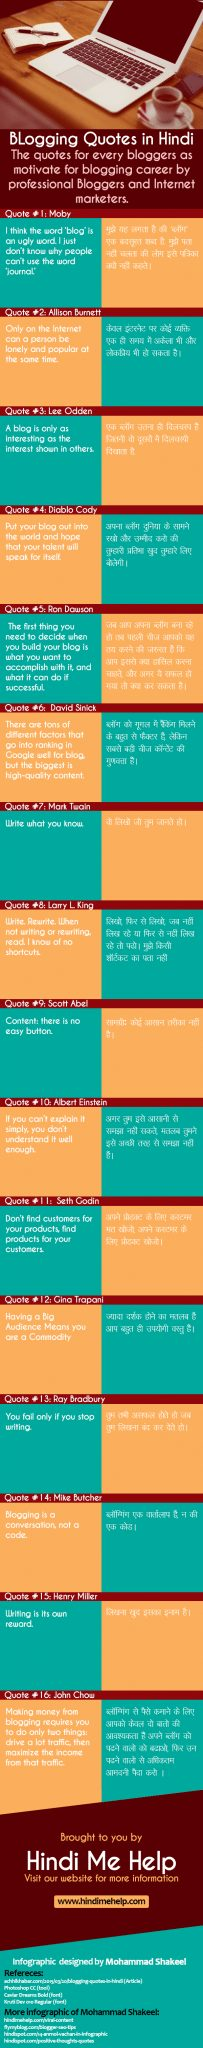 blogging quotes infographic in hindi